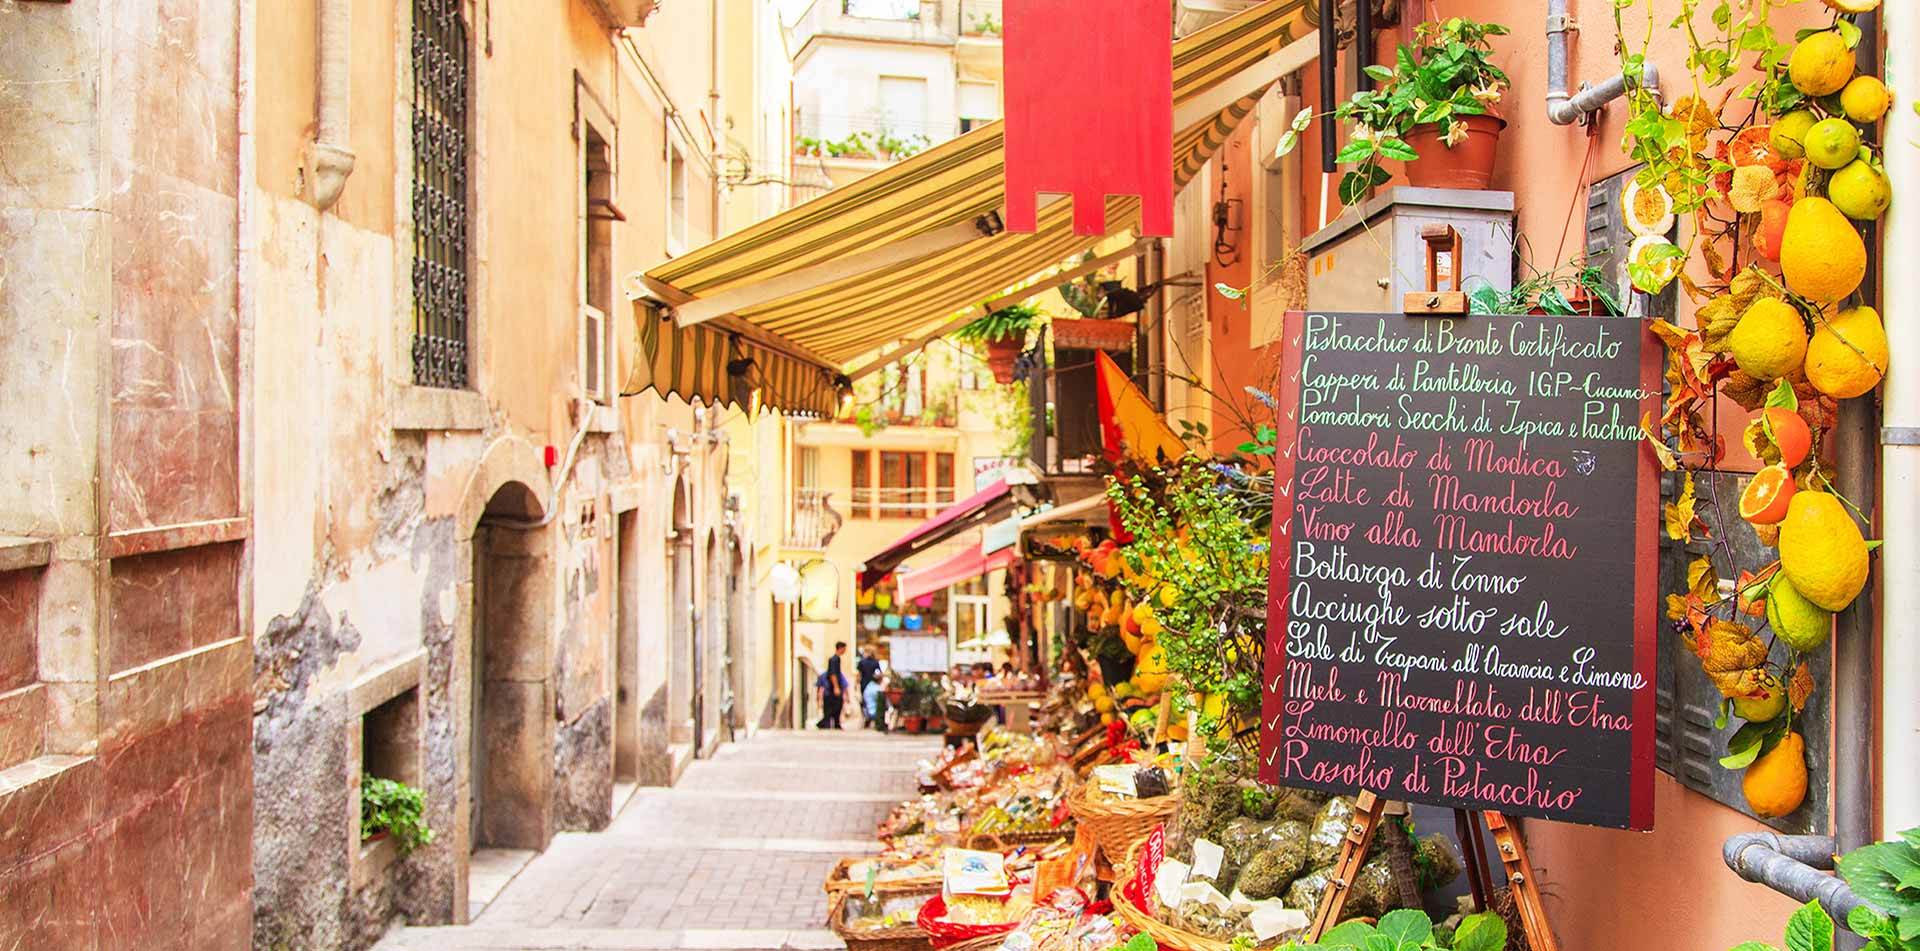 Europe Italy Sicily Taormina local restaurant menu in old town alleyway - luxury vacation destinations